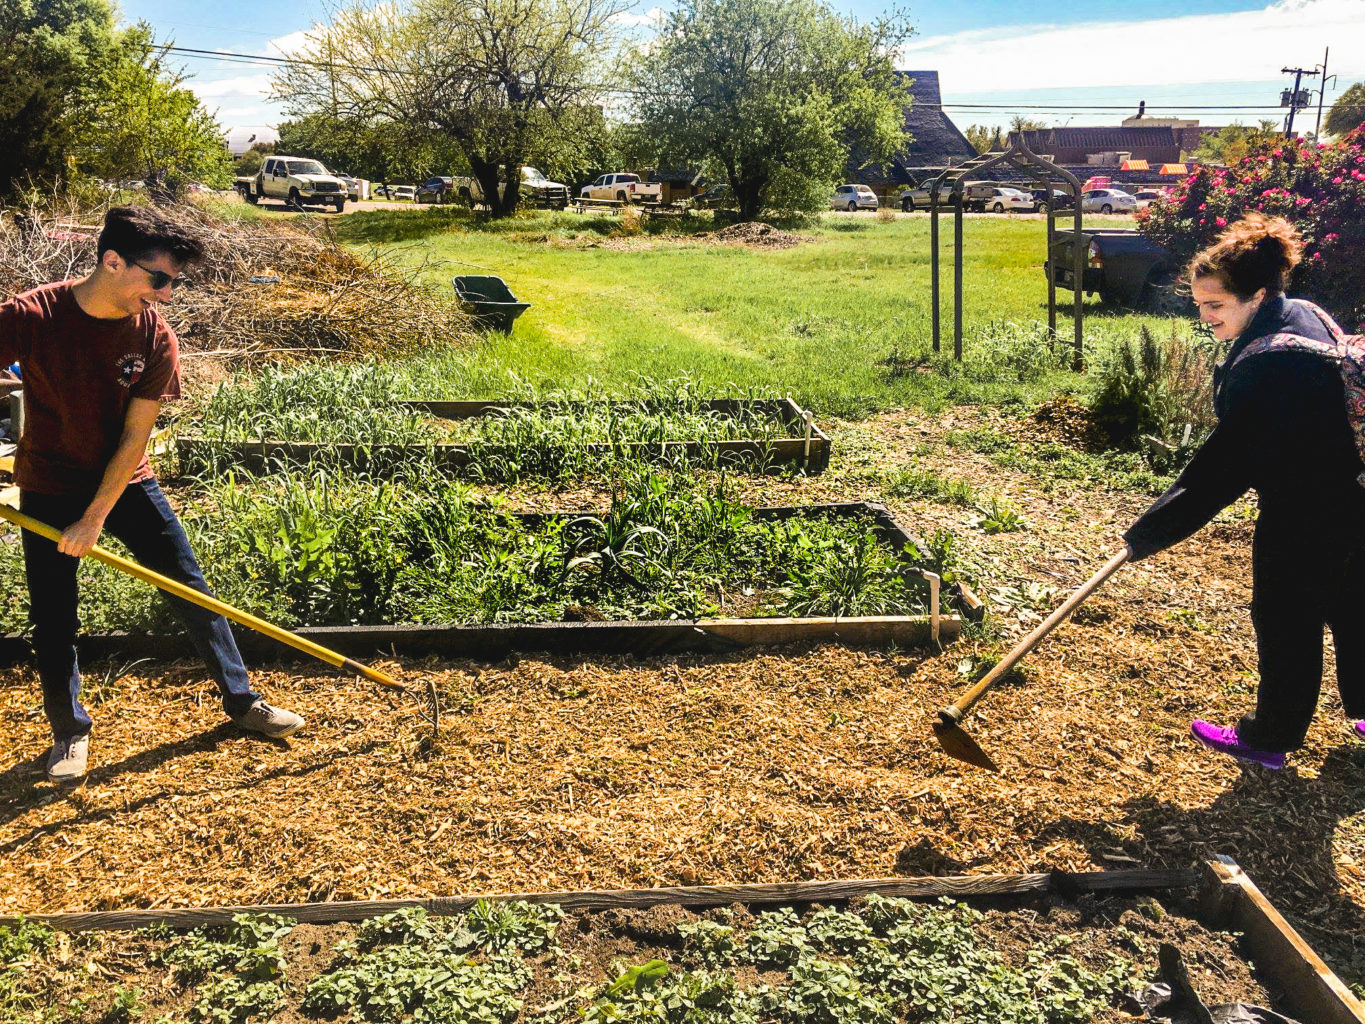 Two students gaining hands-on experience working in a vegetable garden.